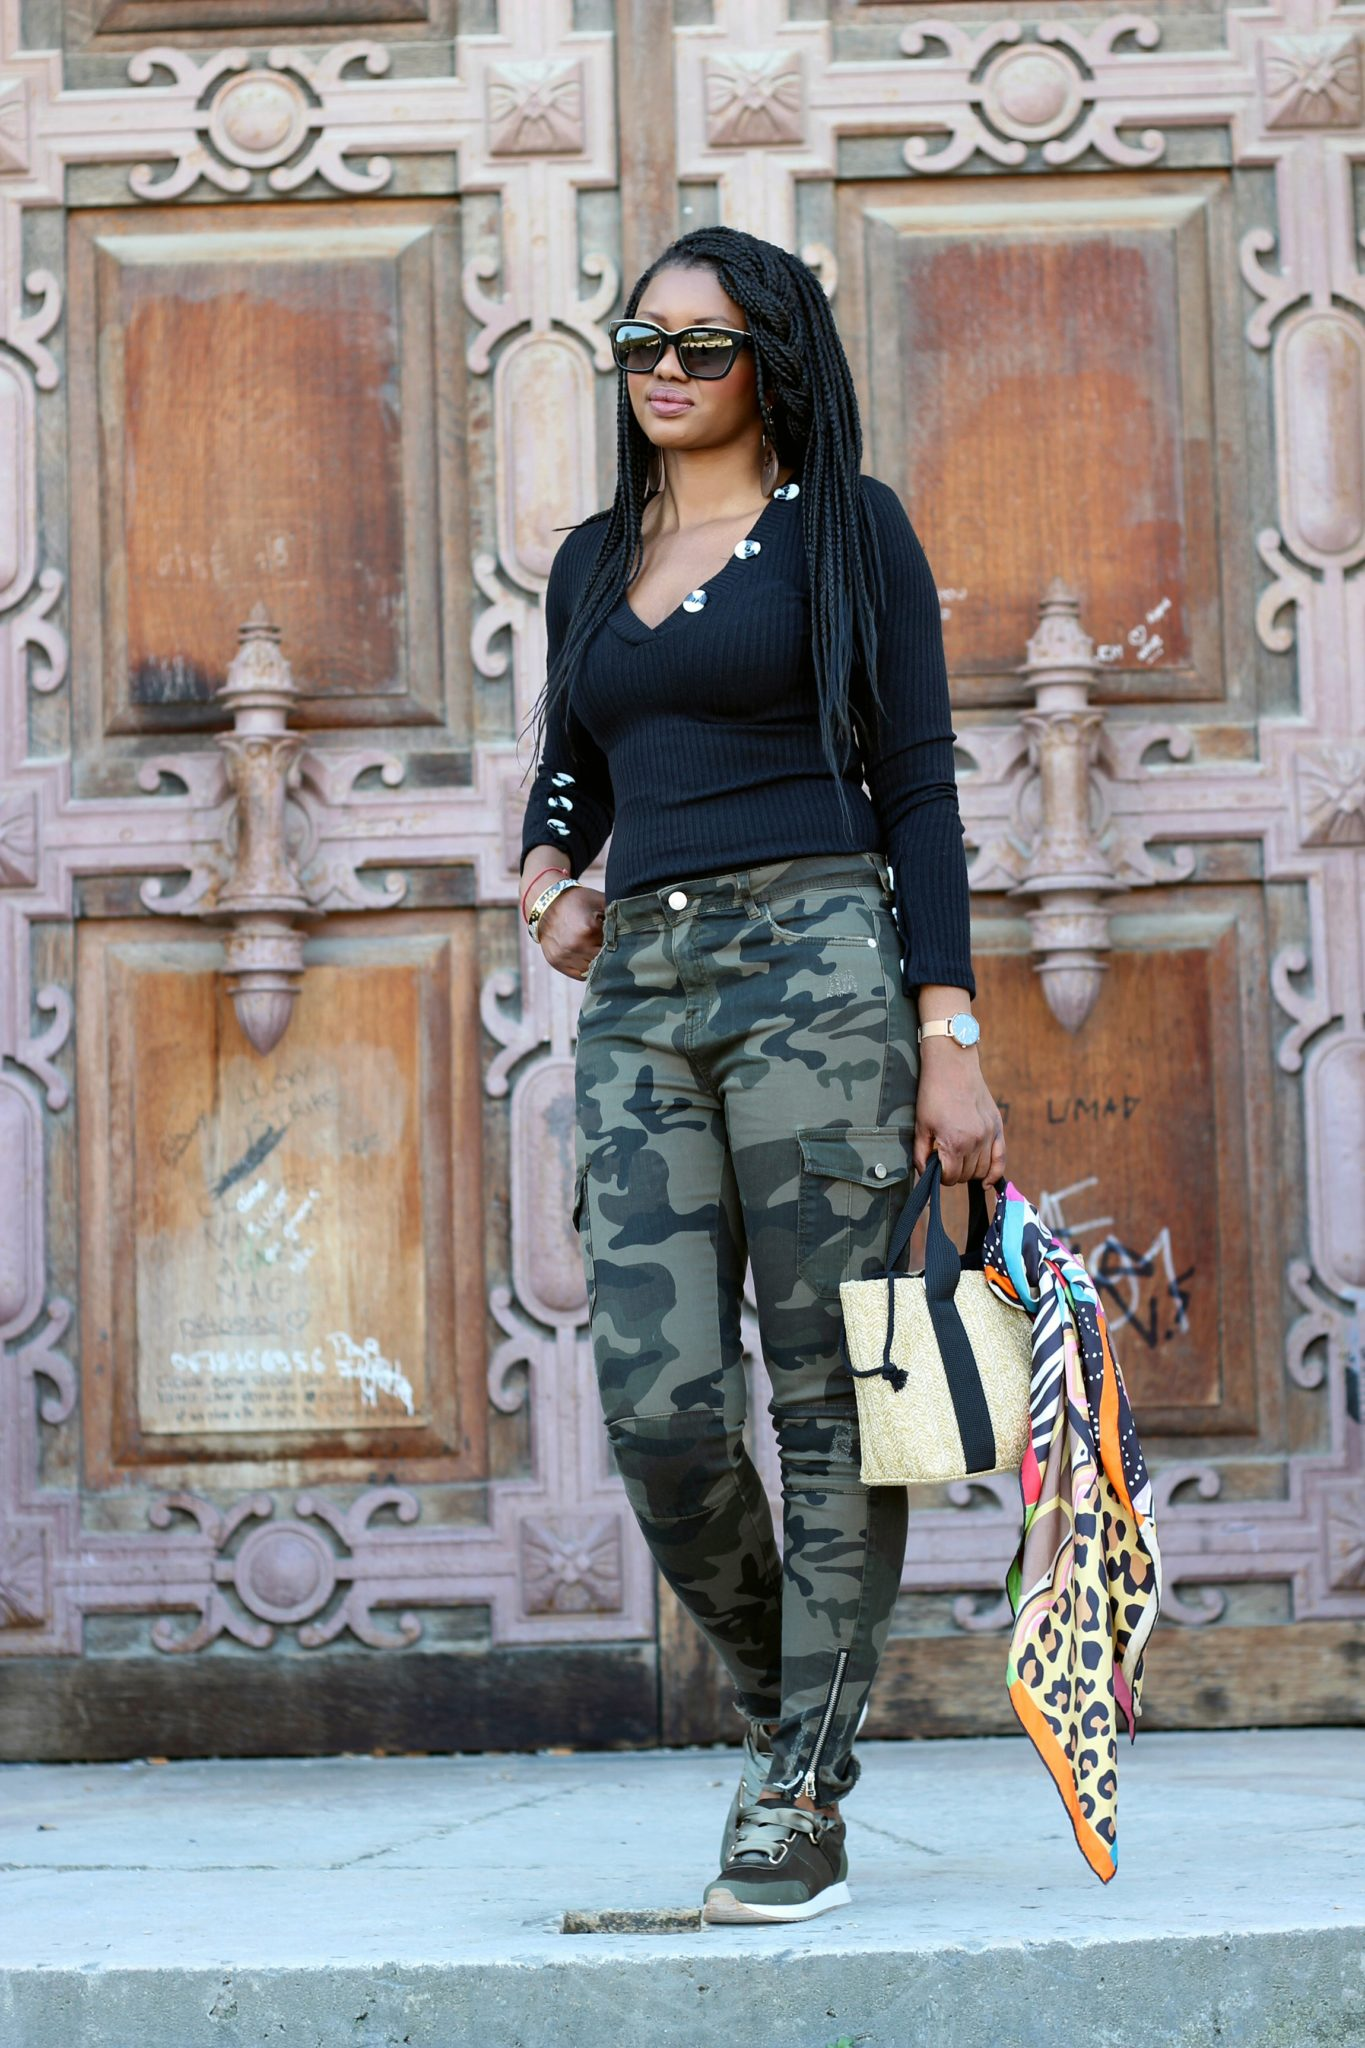 camouflage pantalon cargo militaire camo in the city 155